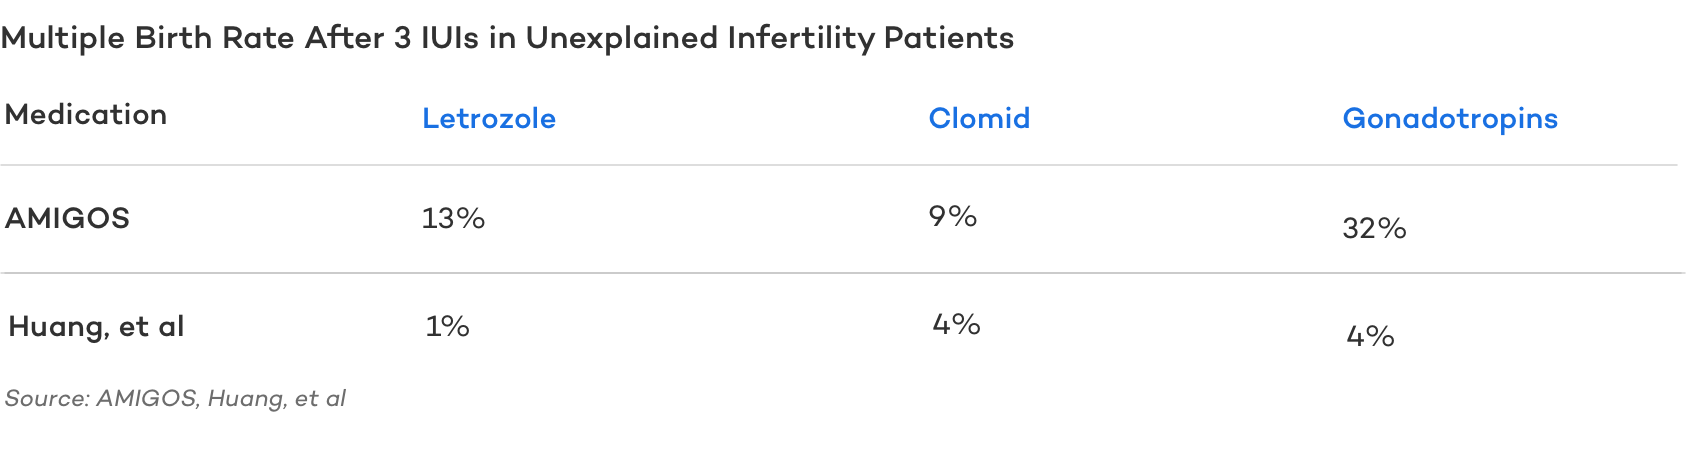 Multiple Birth Rate After 3 IUIs in Unexplained Infertility Patients